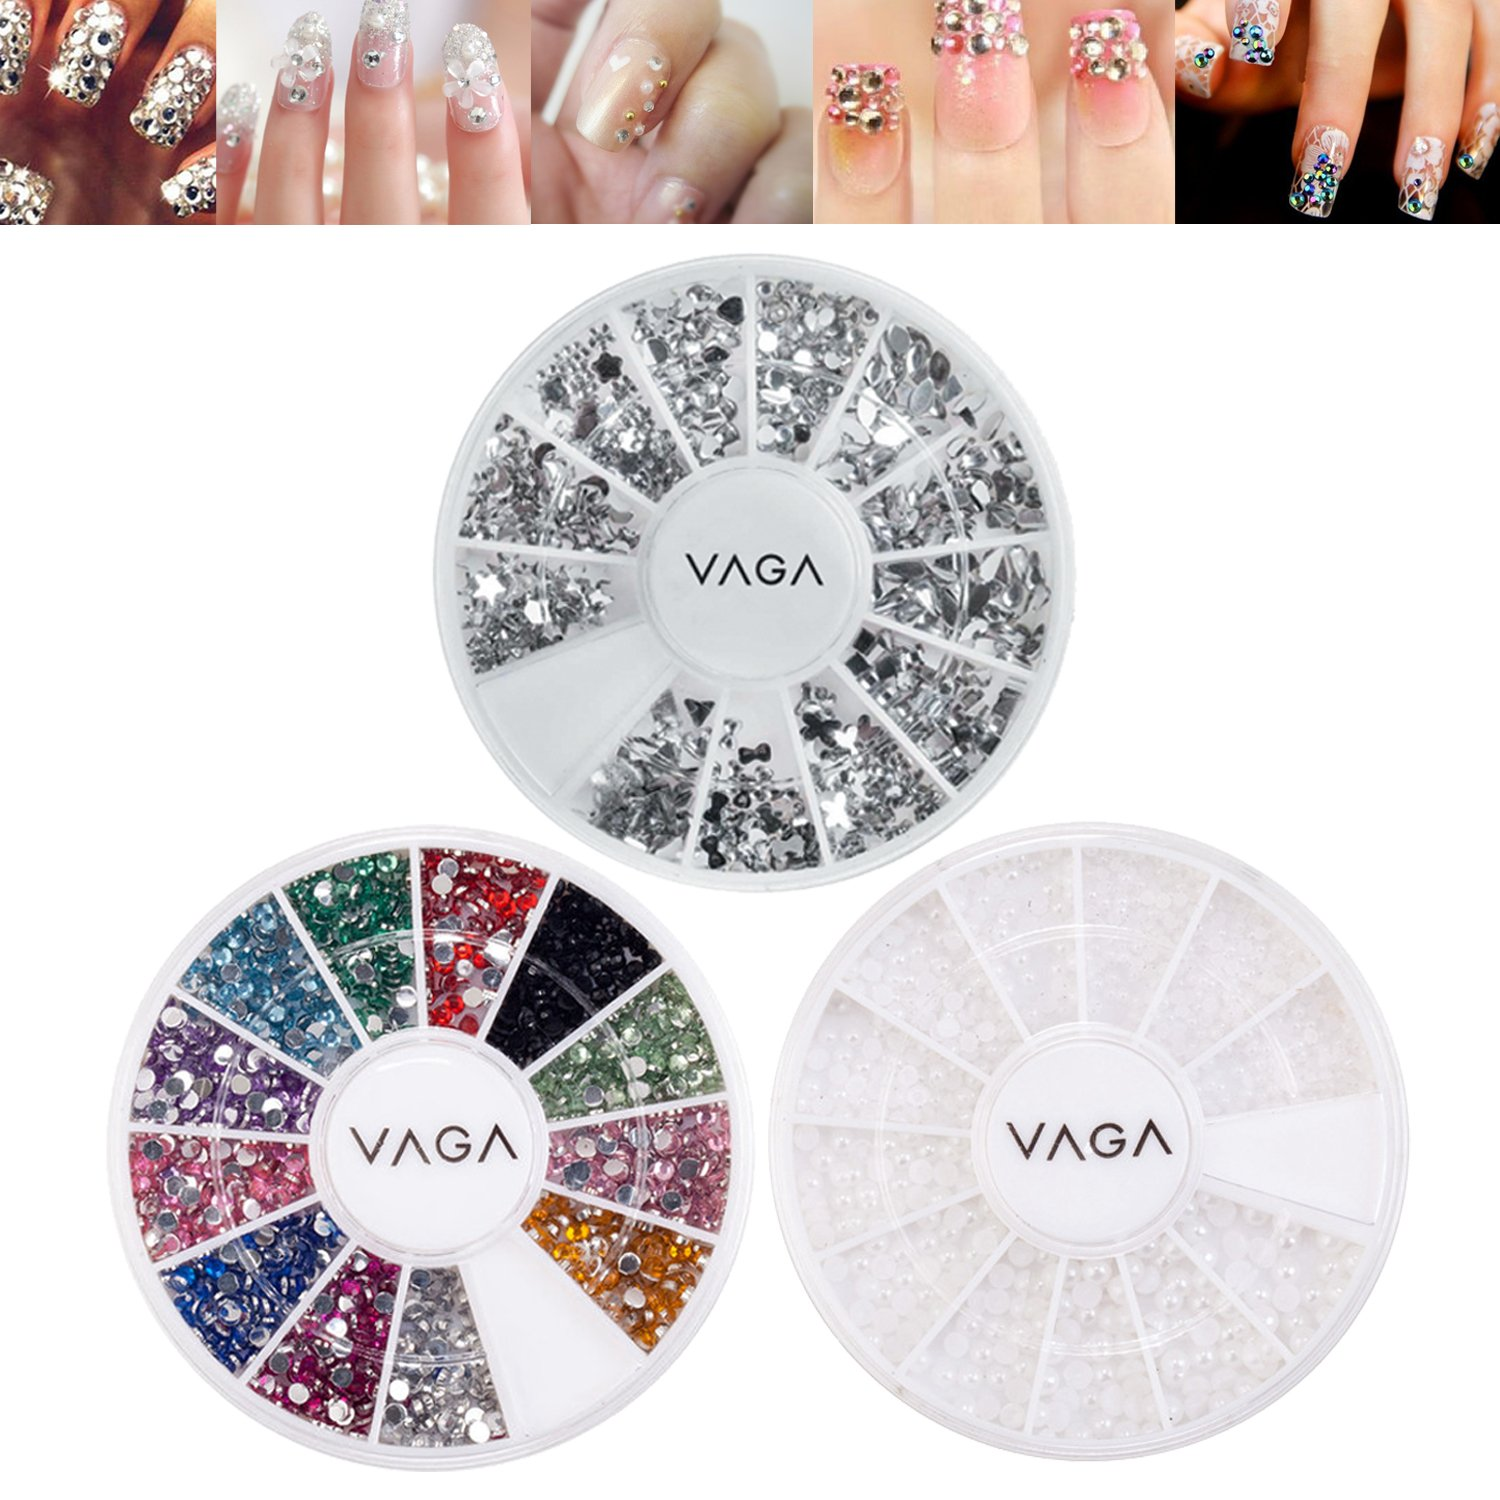 Professional Nail Art Set With Silver Gems / Rhinestones / Crystals In Different Shapes, Premium Gemstones / Jewels In 12 Colors And White Pearls Beads Decorations By VAGA